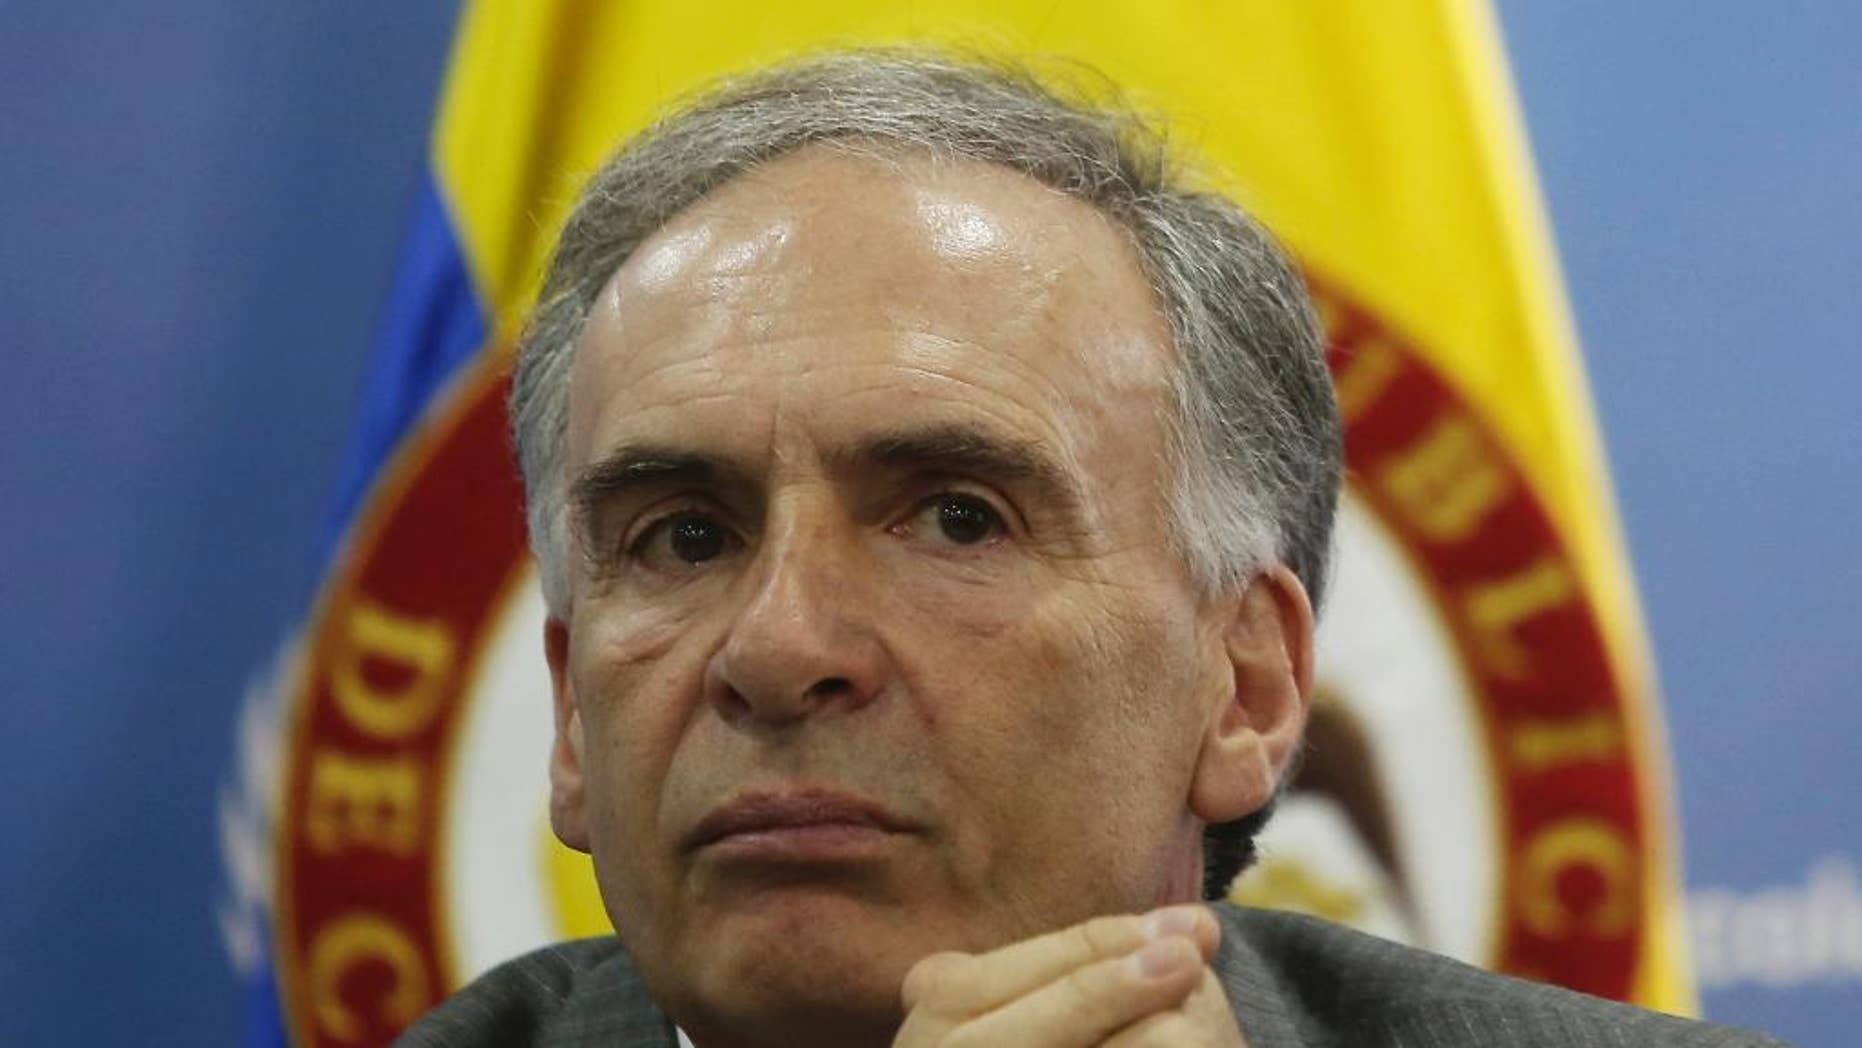 FILE - In this Monday, Oct. 10, 2016, file photo, Jean Arnault, of France, the head of the U.N. political mission inColombia, attends a press conference in Bogota, Colombia. Colombians don't want the peace process to unravel and would like to see quick agreement on a new peace deal to replace the one rejected by voters, Arnault said Wednesday, Oct. 19. (AP Photo/Ivan Valencia, File)